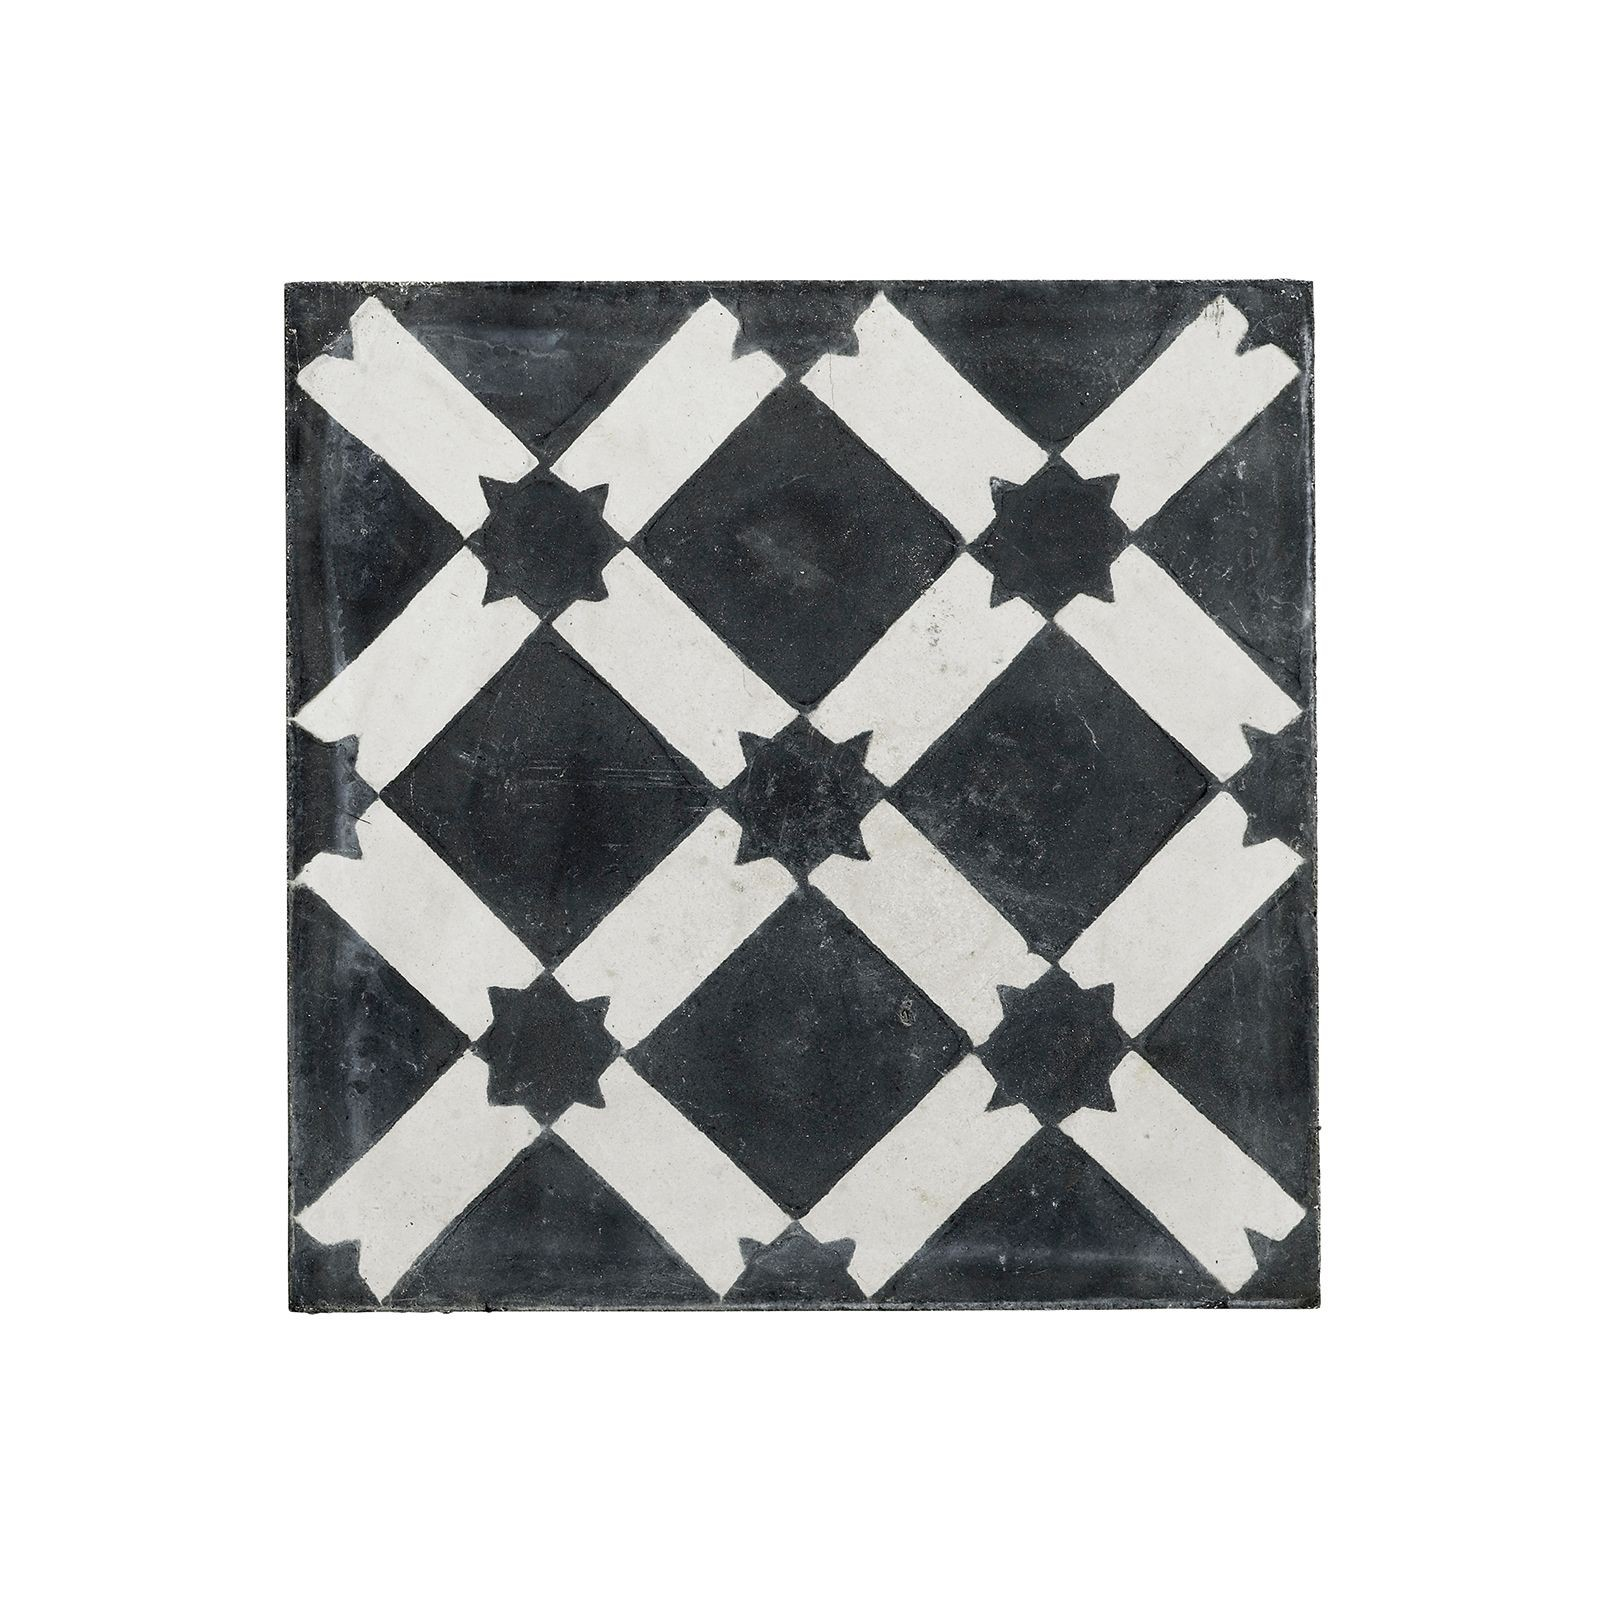 Handmade concrete tile black and white star design for Tiles black and white